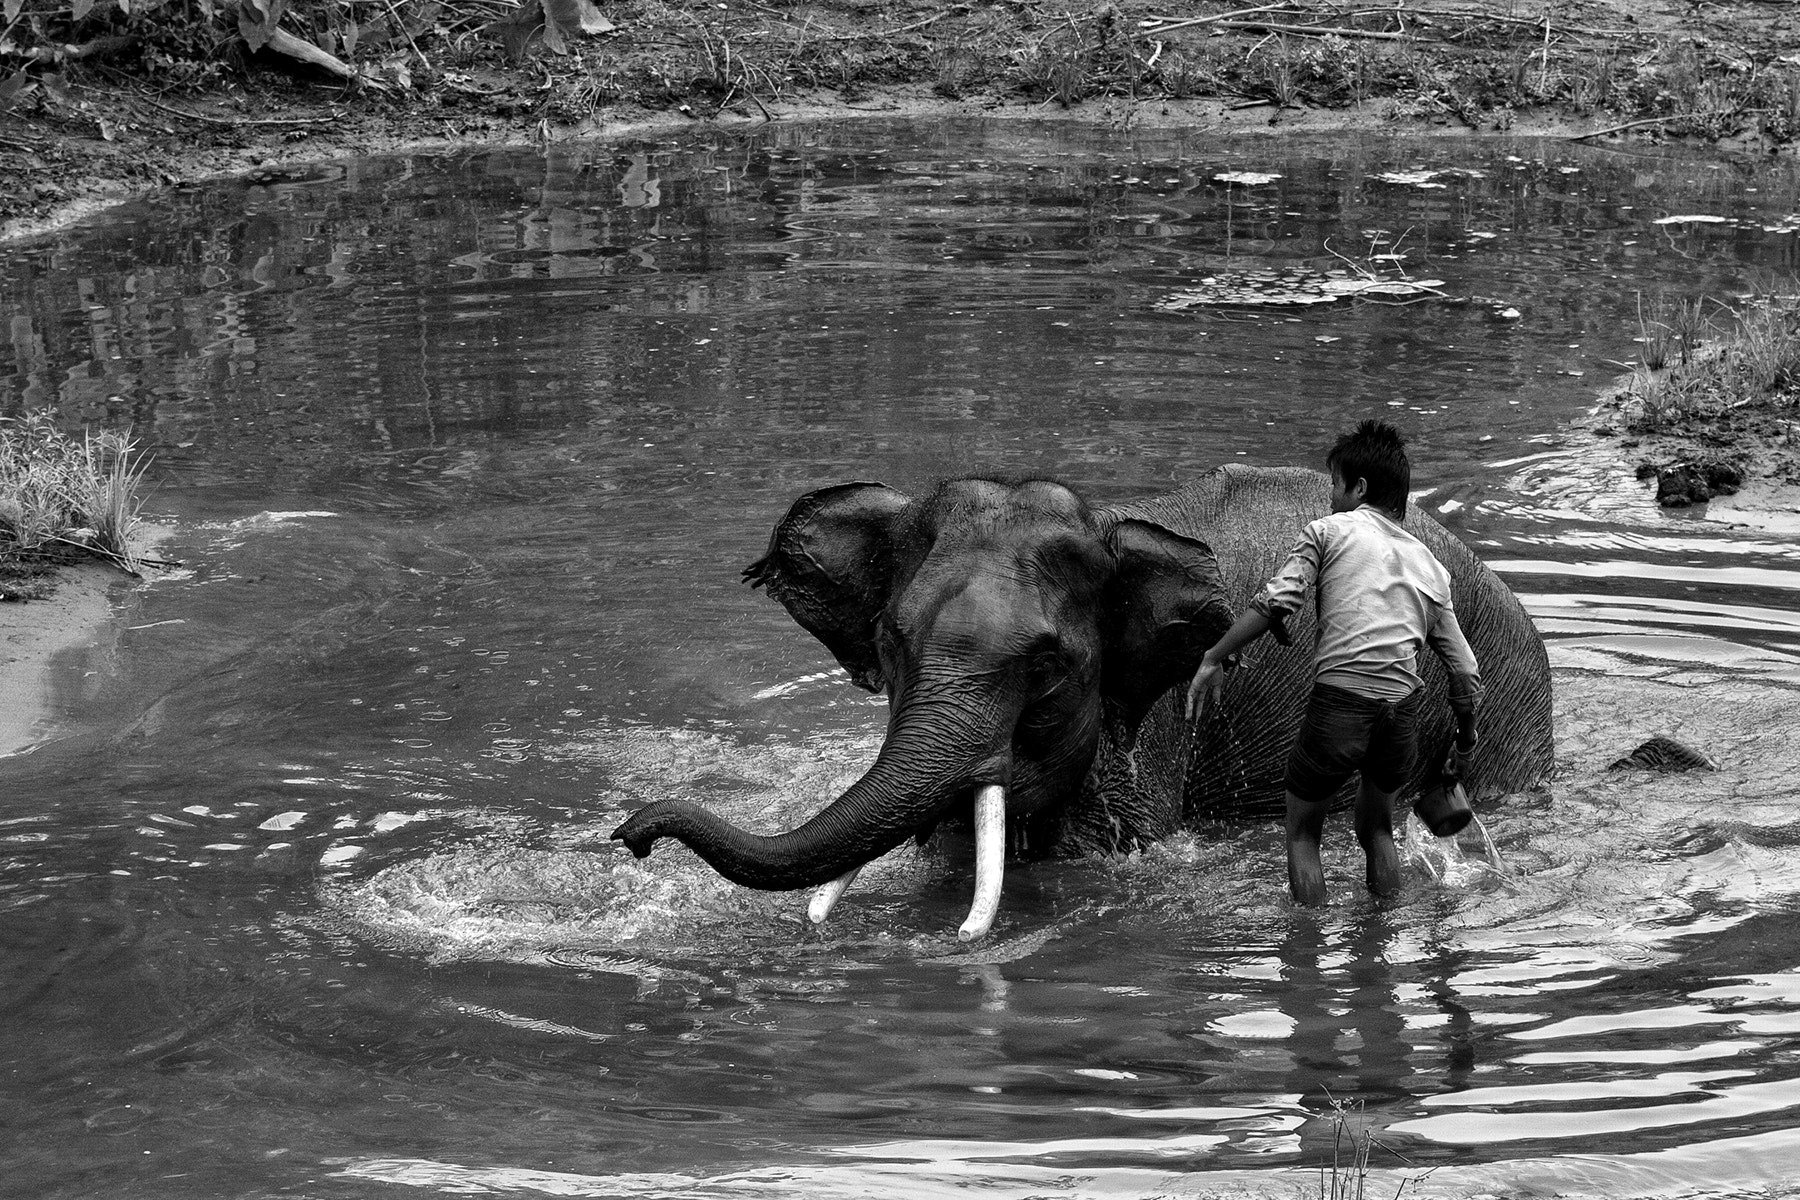 Photograph Bathing Time by Ye Tun on 500px